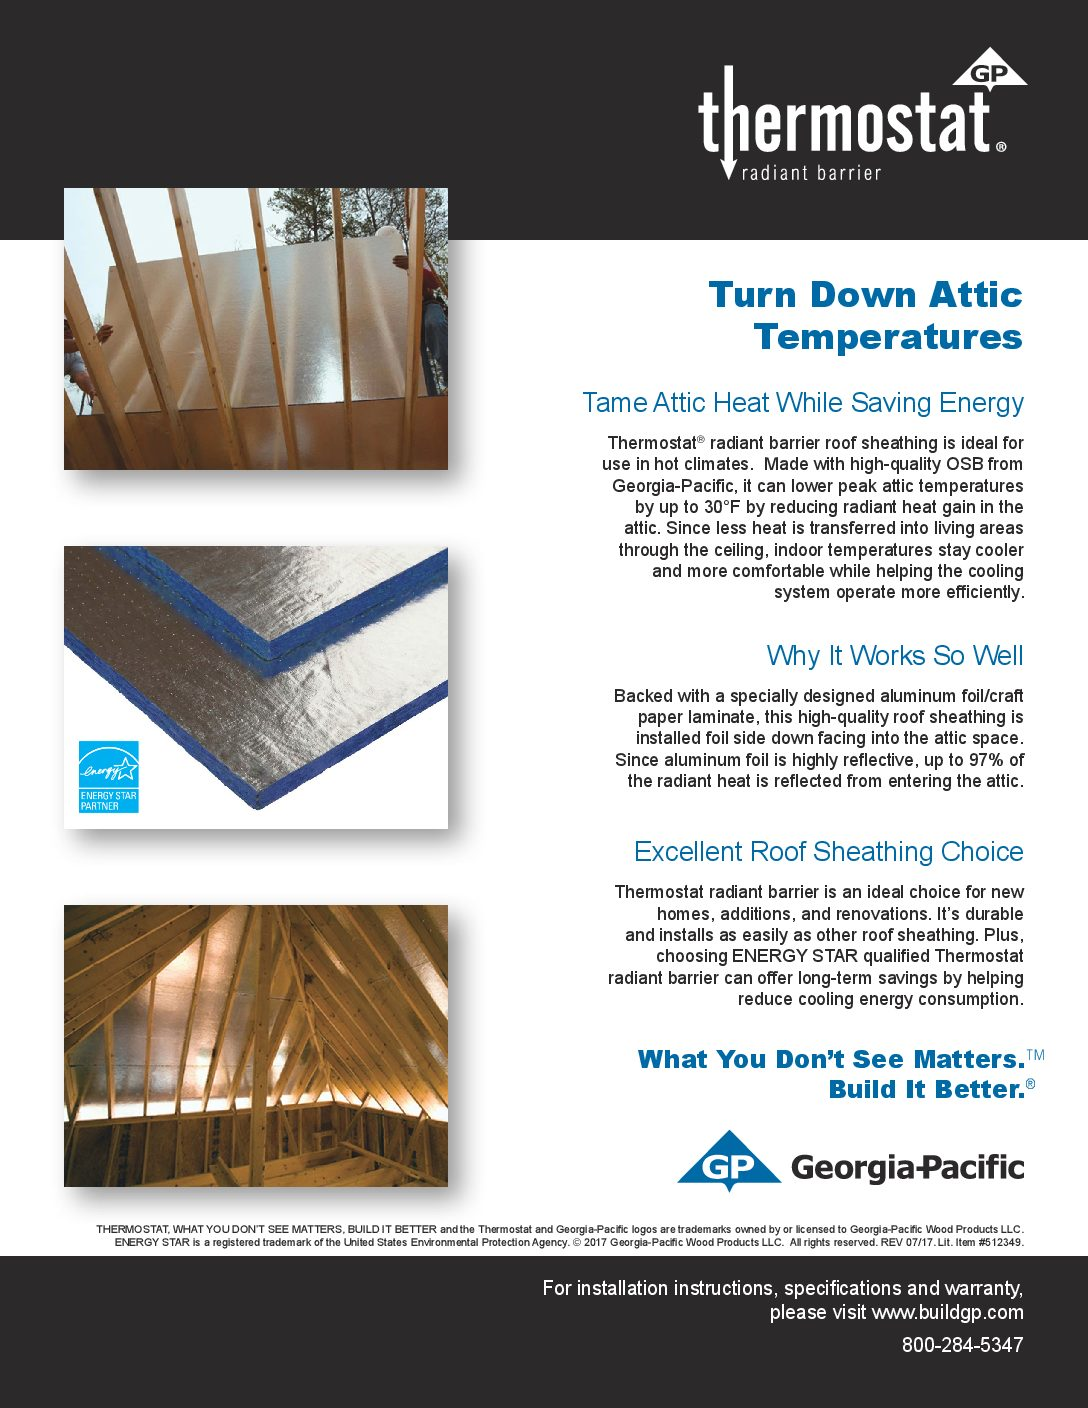 Thermostat Radiant Barrier Sheathing Osb Radiant Barrier